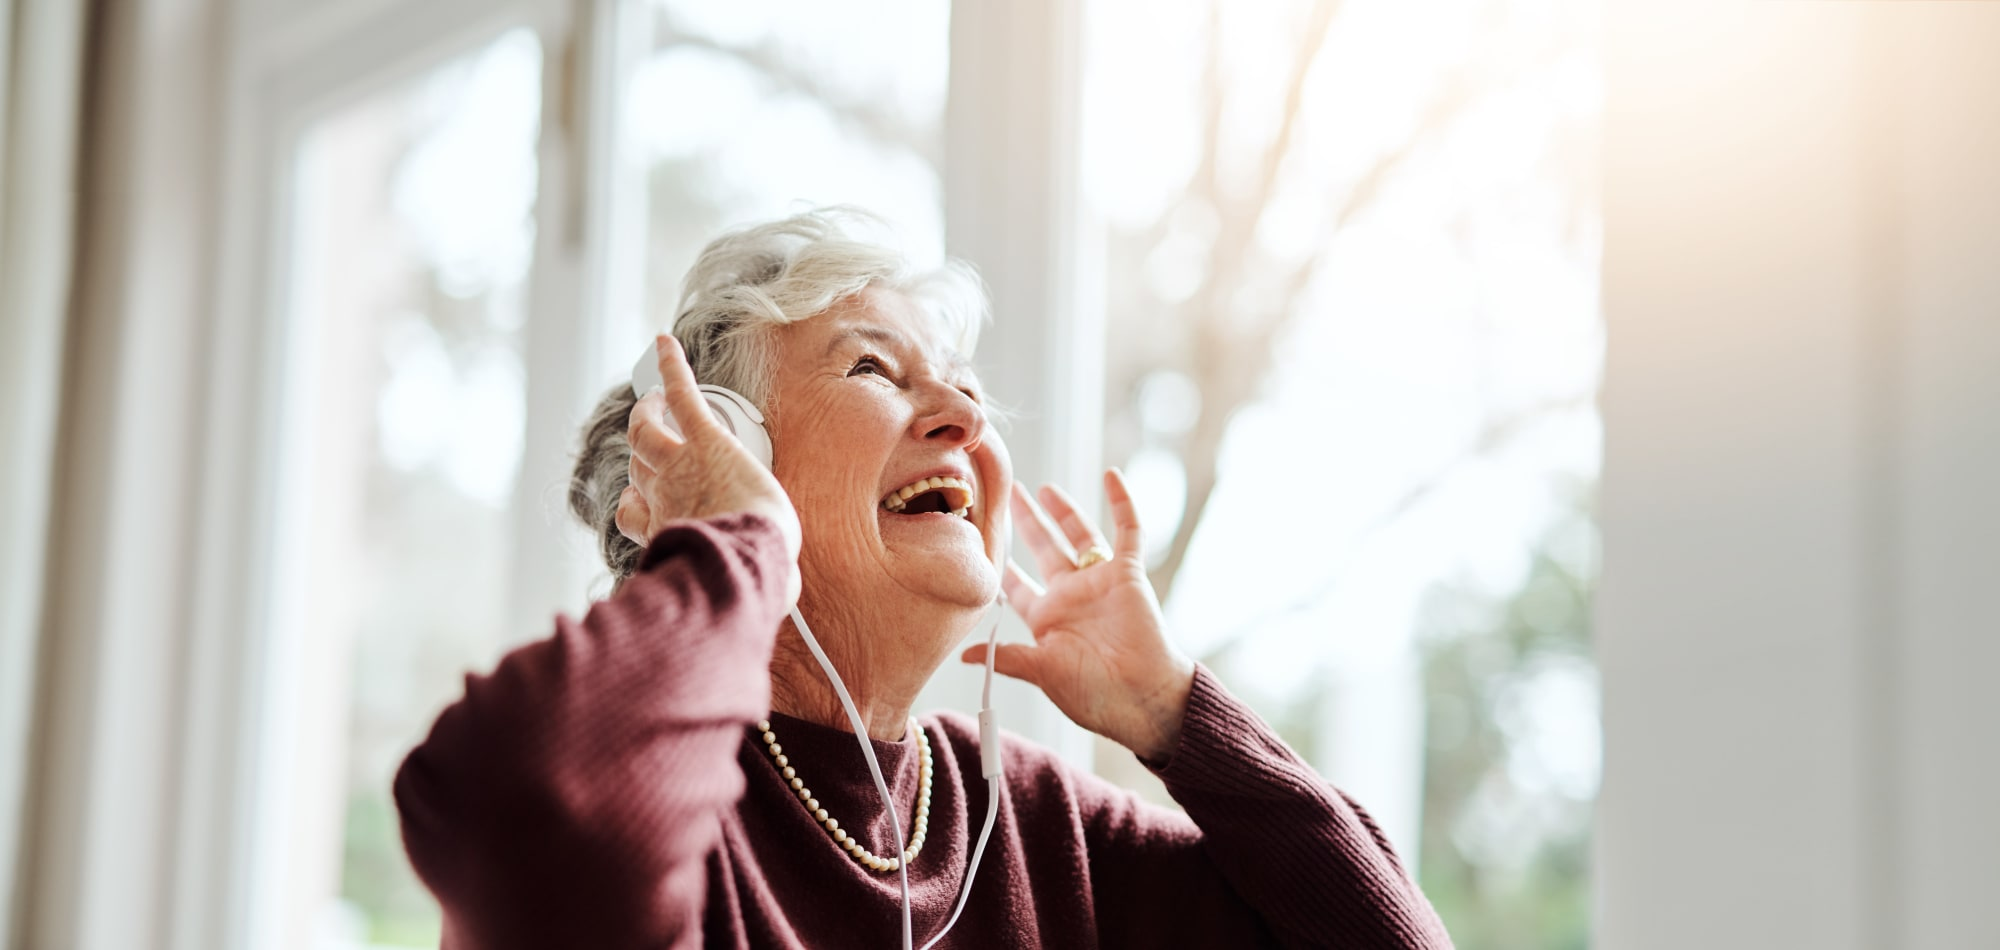 Activities and events at Milestone Senior Living Stoughton in Stoughton, Wisconsin.